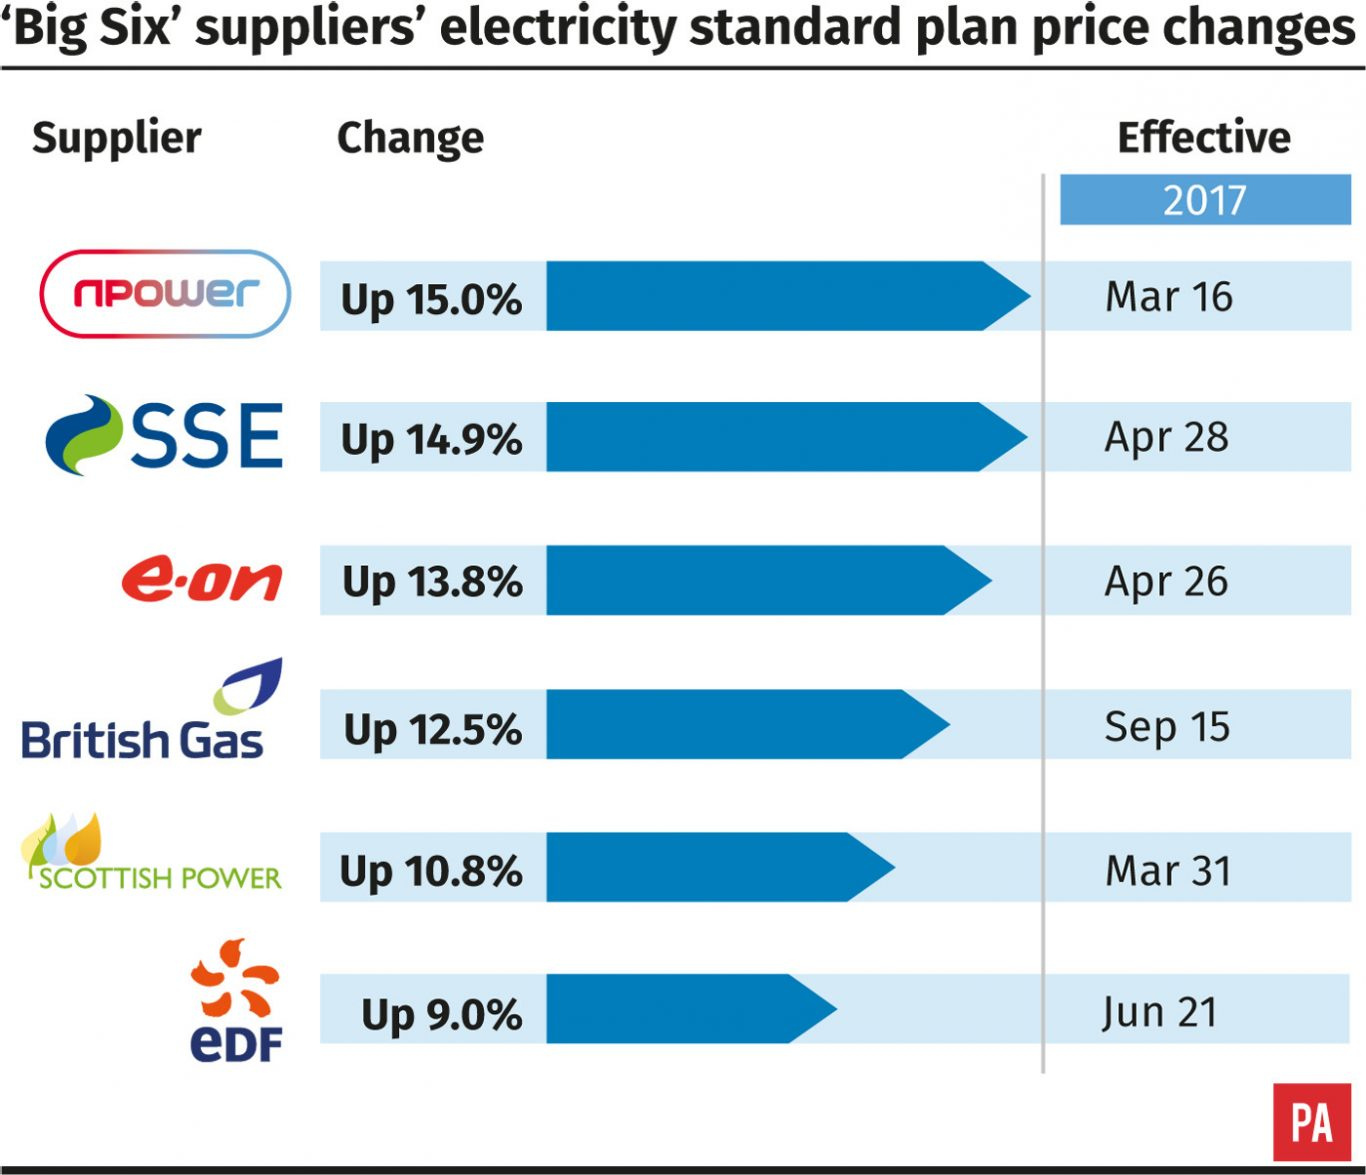 Big Six suppliers electricity standard plan price changes